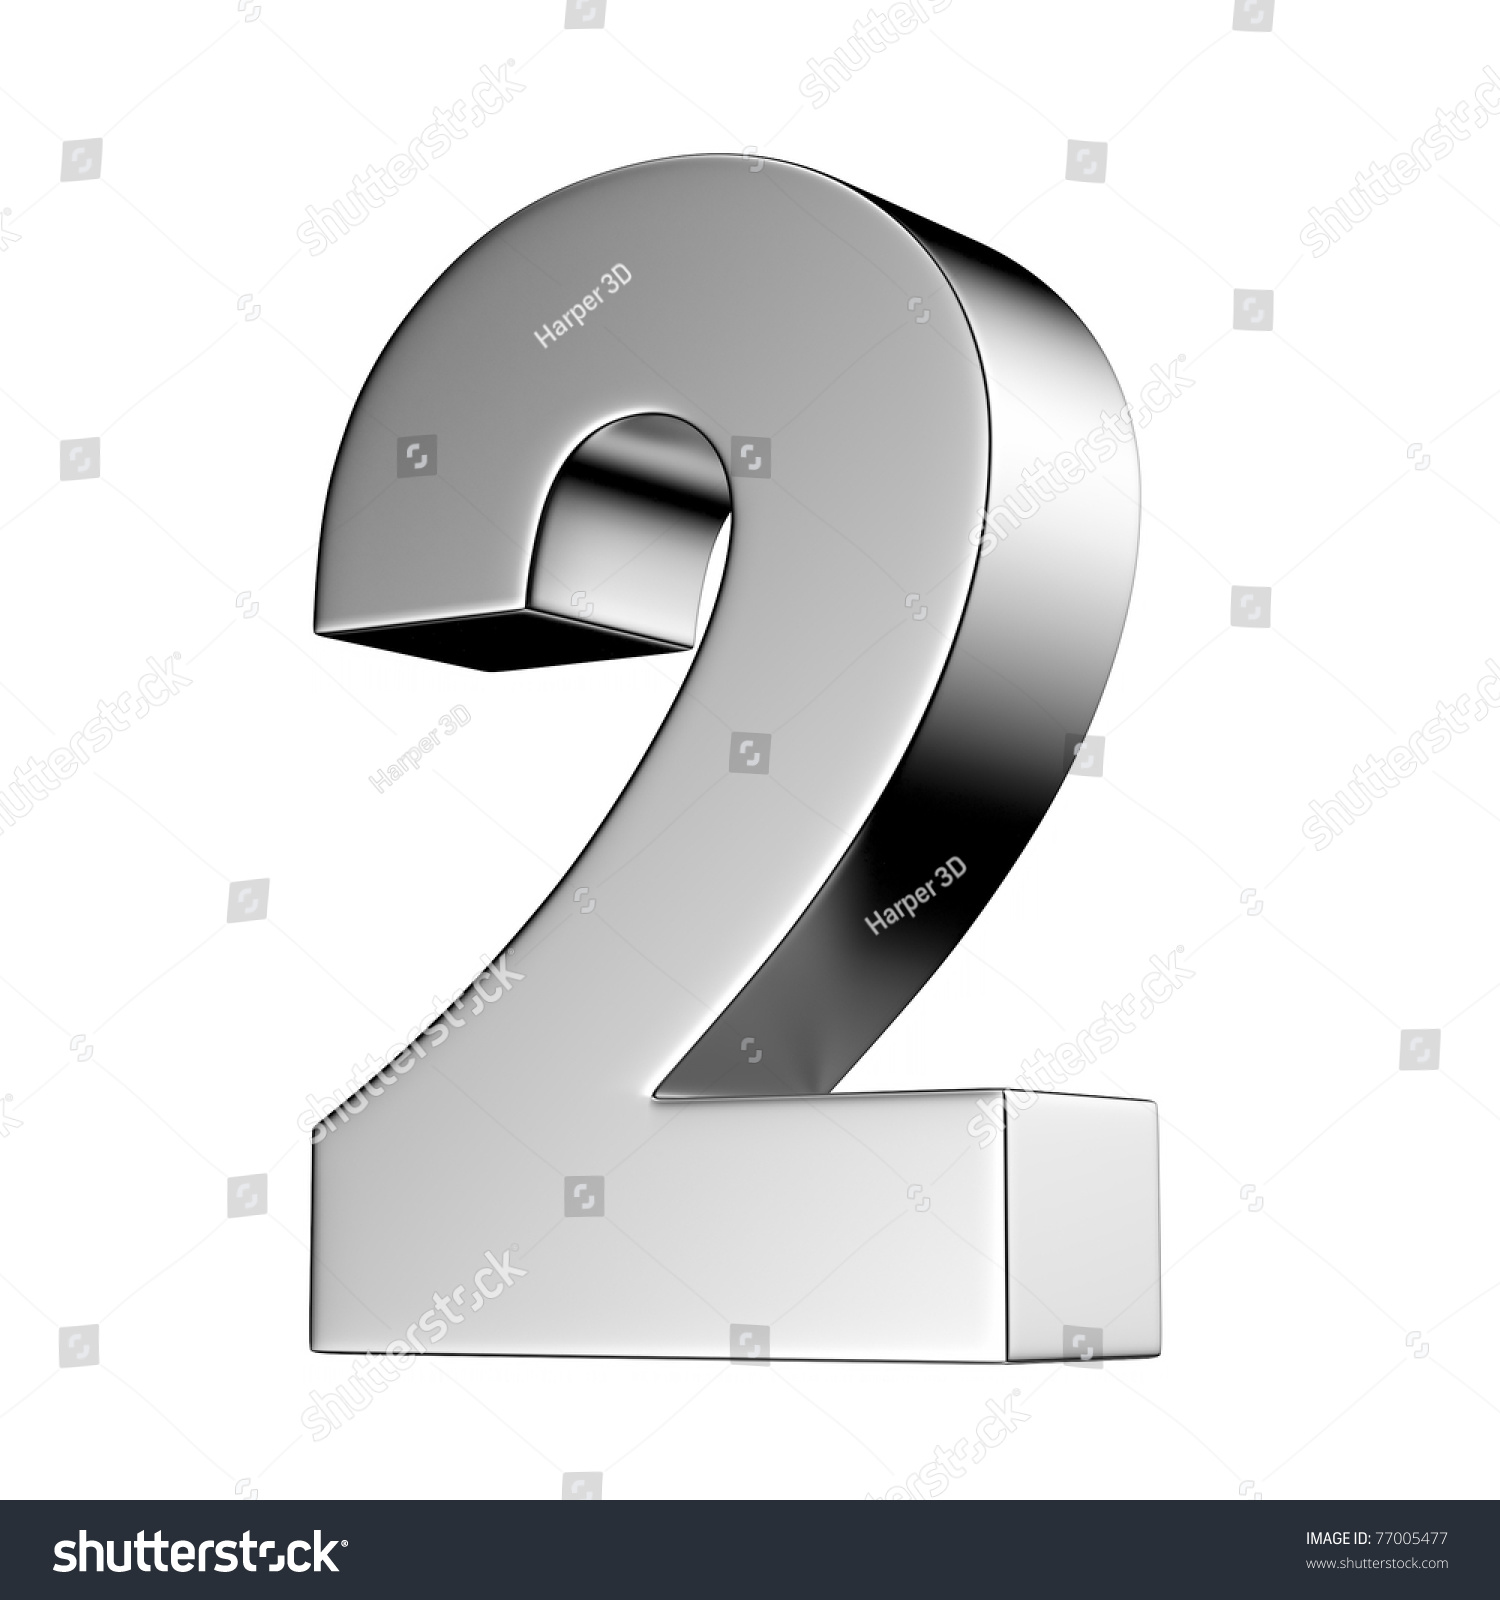 Numerology meaning of 29 picture 4